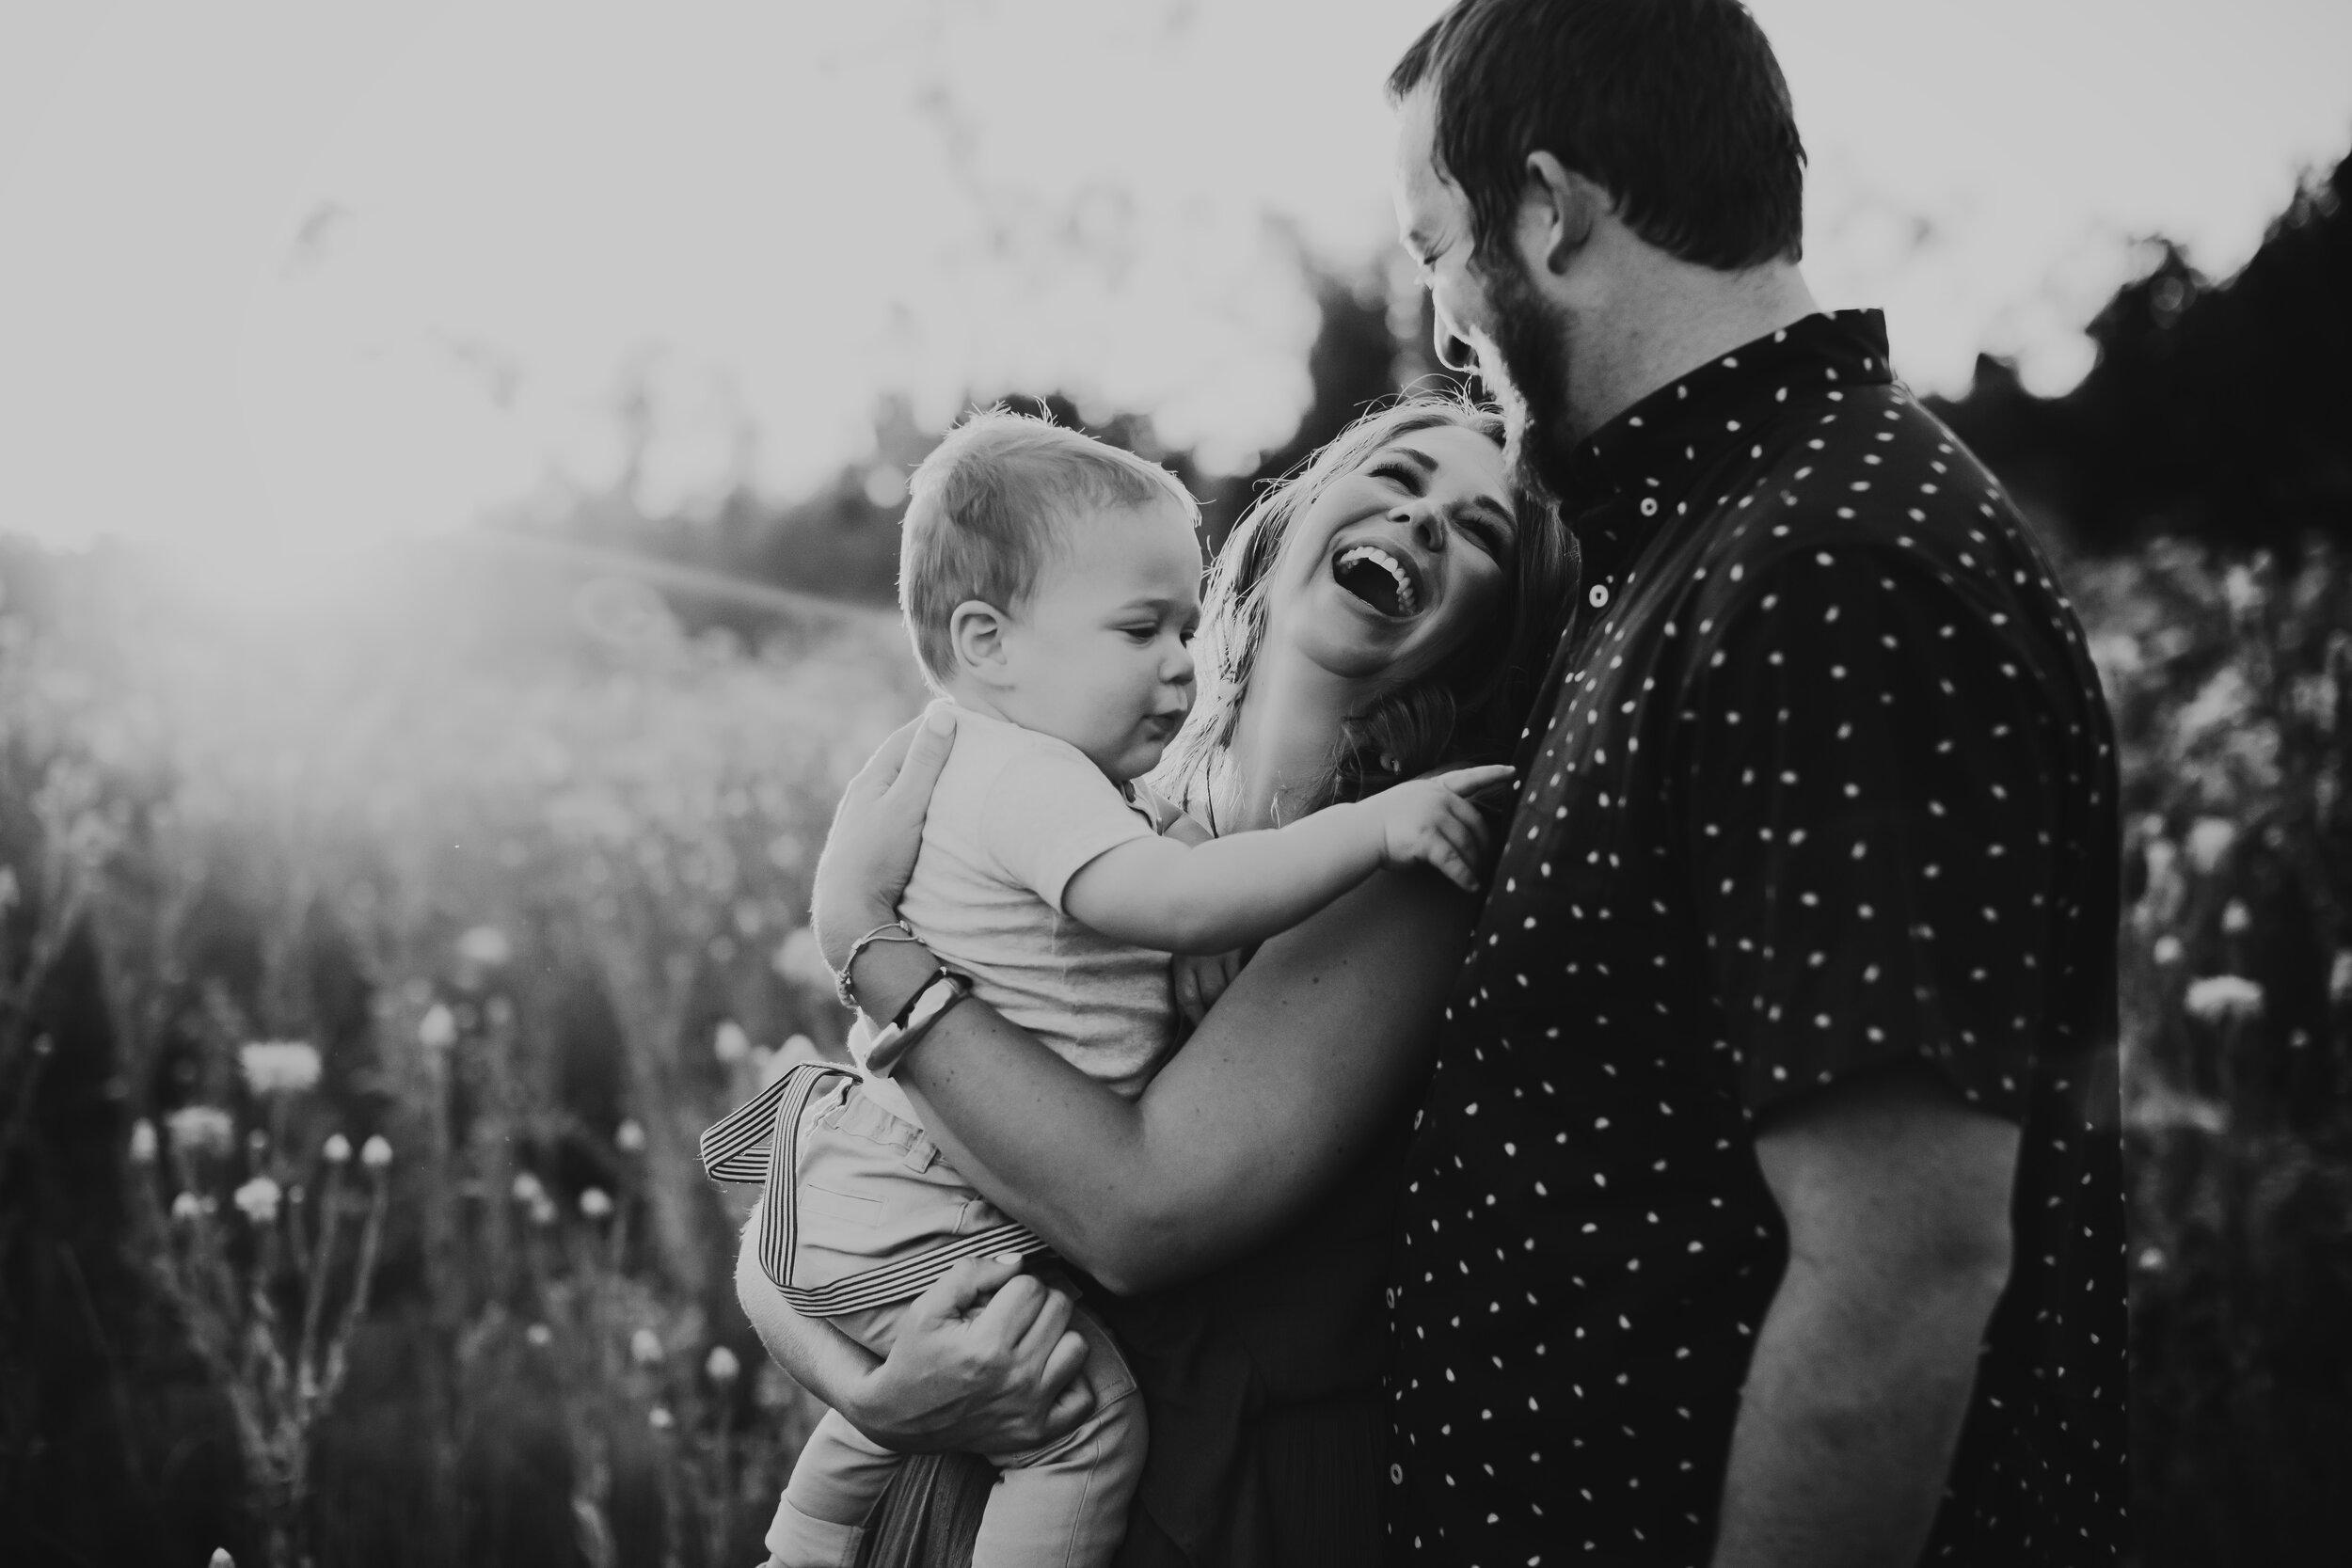 Natural moments of laughter between mom and dad while baby explores #tealawardphotography #texasfamilyphotographer #amarillophotographer #amarillofamilyphotographer #lifestylephotography #emotionalphotography #familyphotoshoot #family #lovingsiblings #purejoy #familyphotos #naturalfamilyinteraction